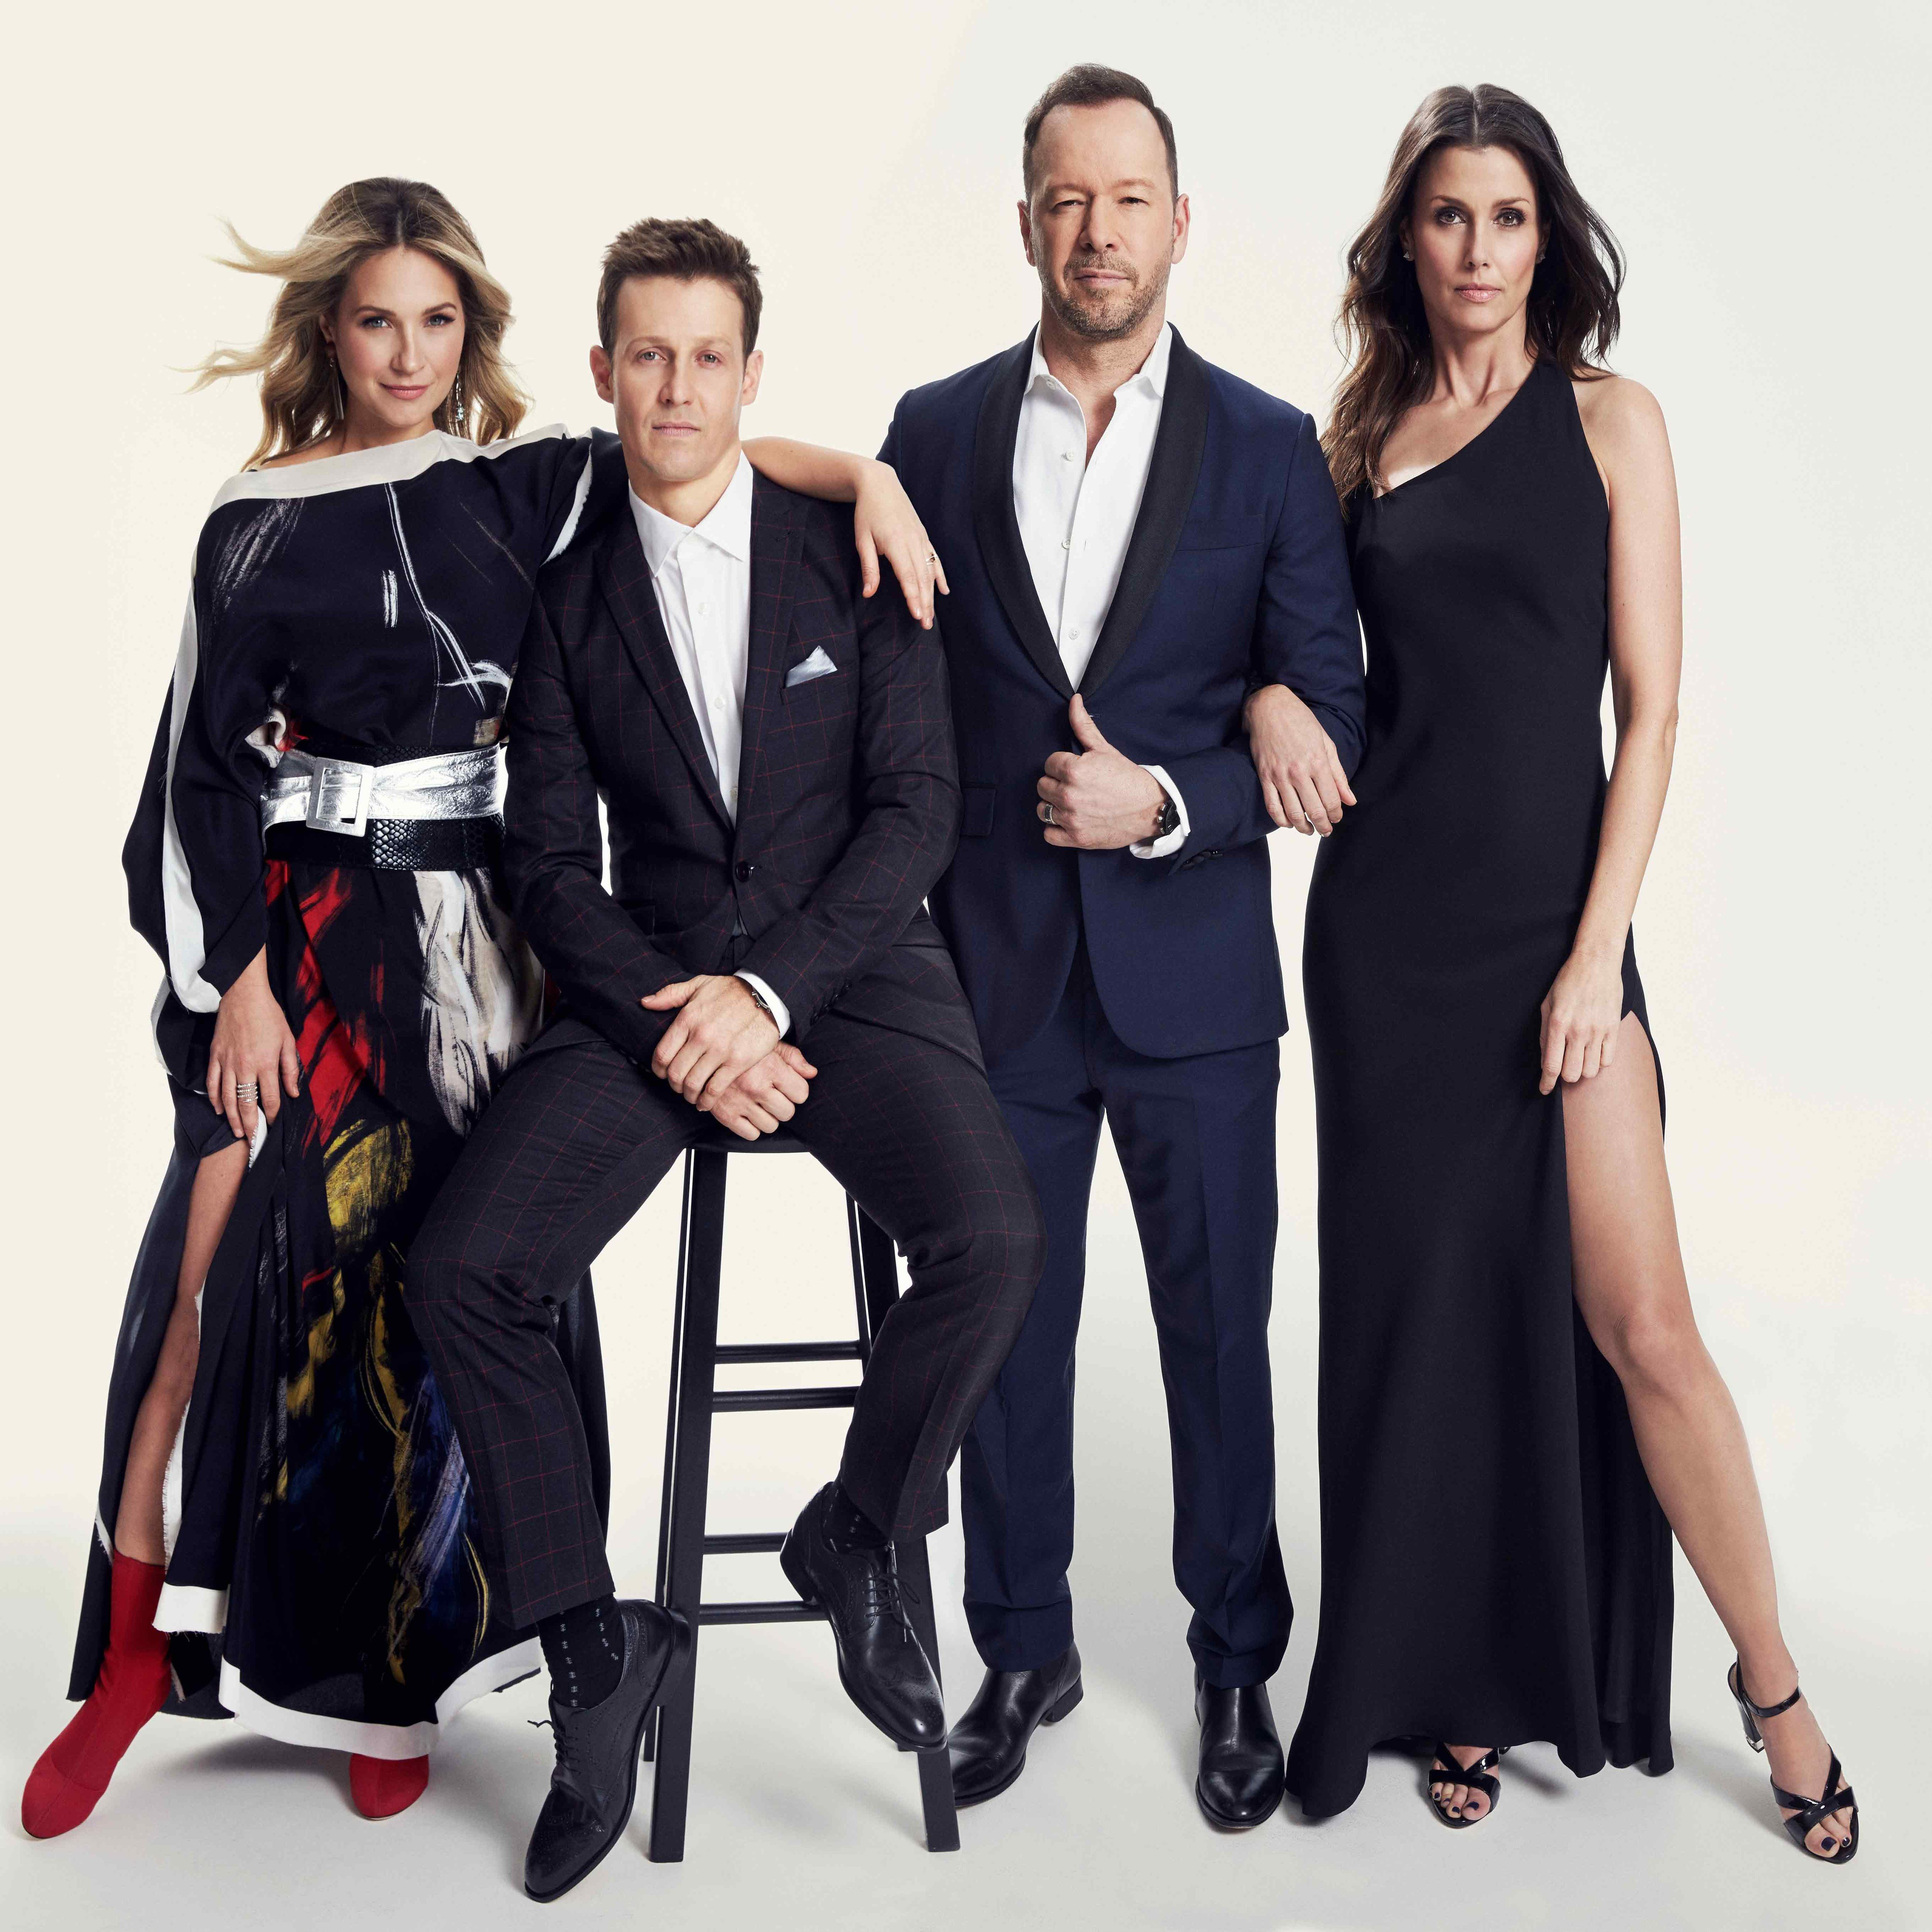 Blue Bloods cast member for a glam photo shoot.